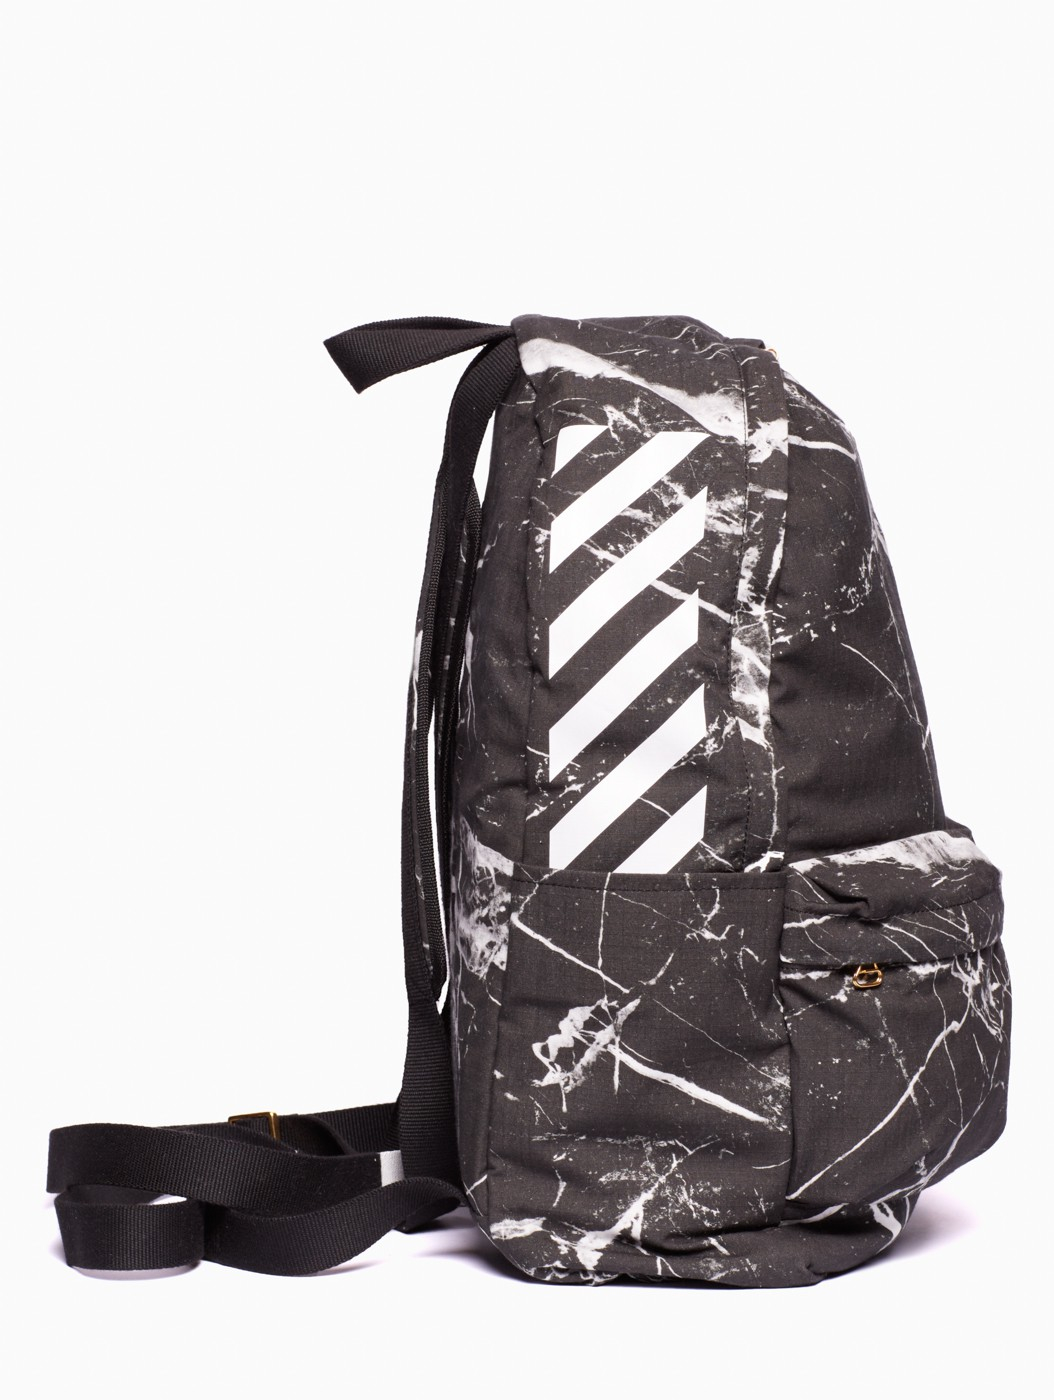 off white c o virgil abloh backpack in black for men lyst. Black Bedroom Furniture Sets. Home Design Ideas